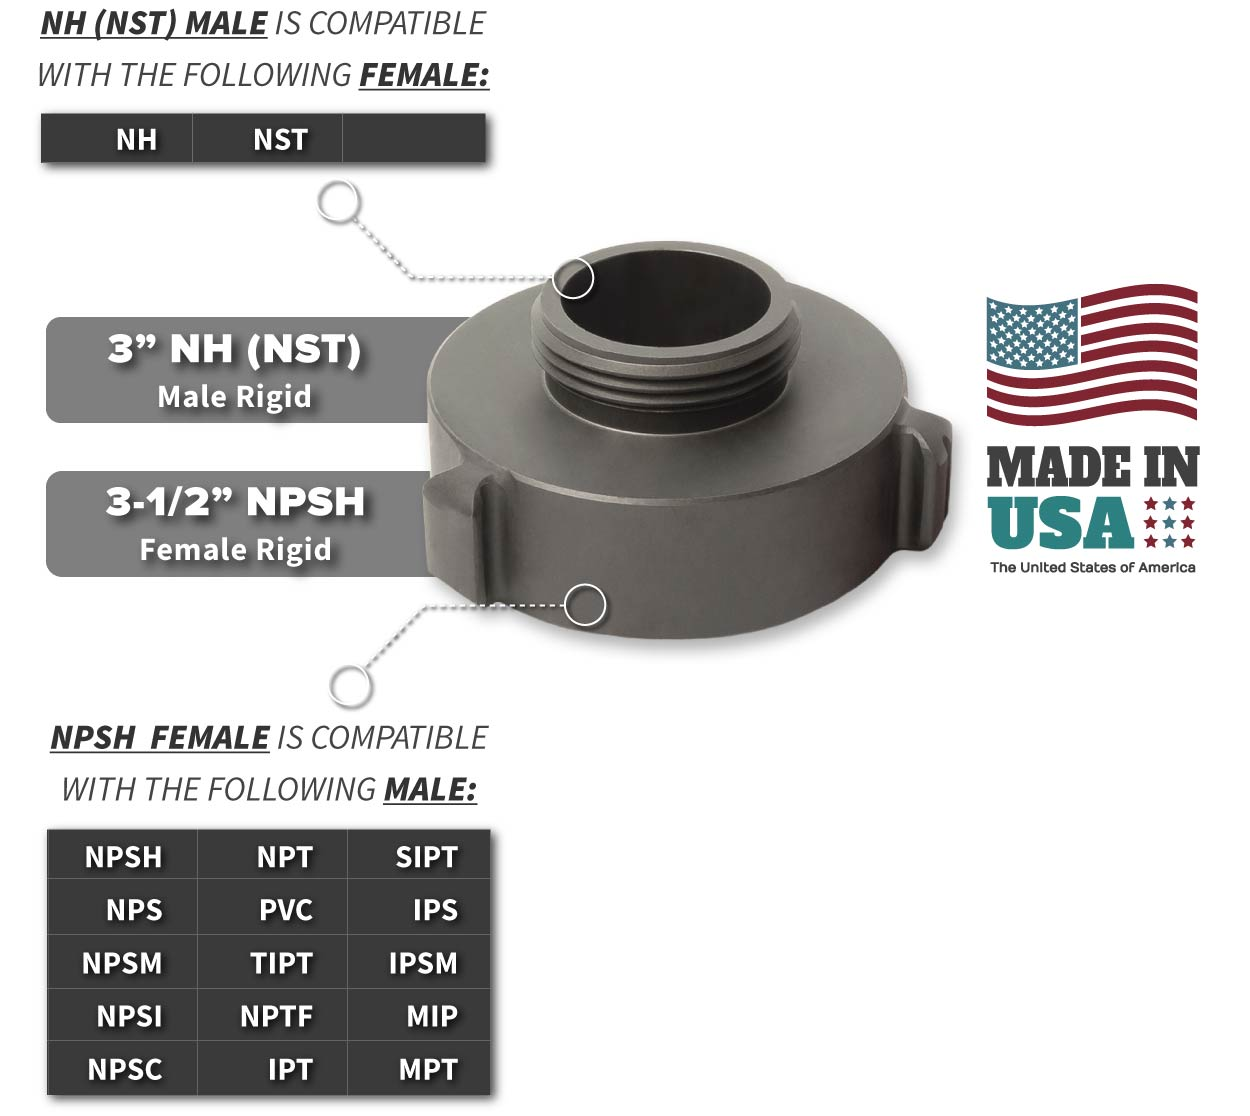 3.5 Inch NPSH Female x 3 Inch NH-NST Male Compatibility Thread Chart